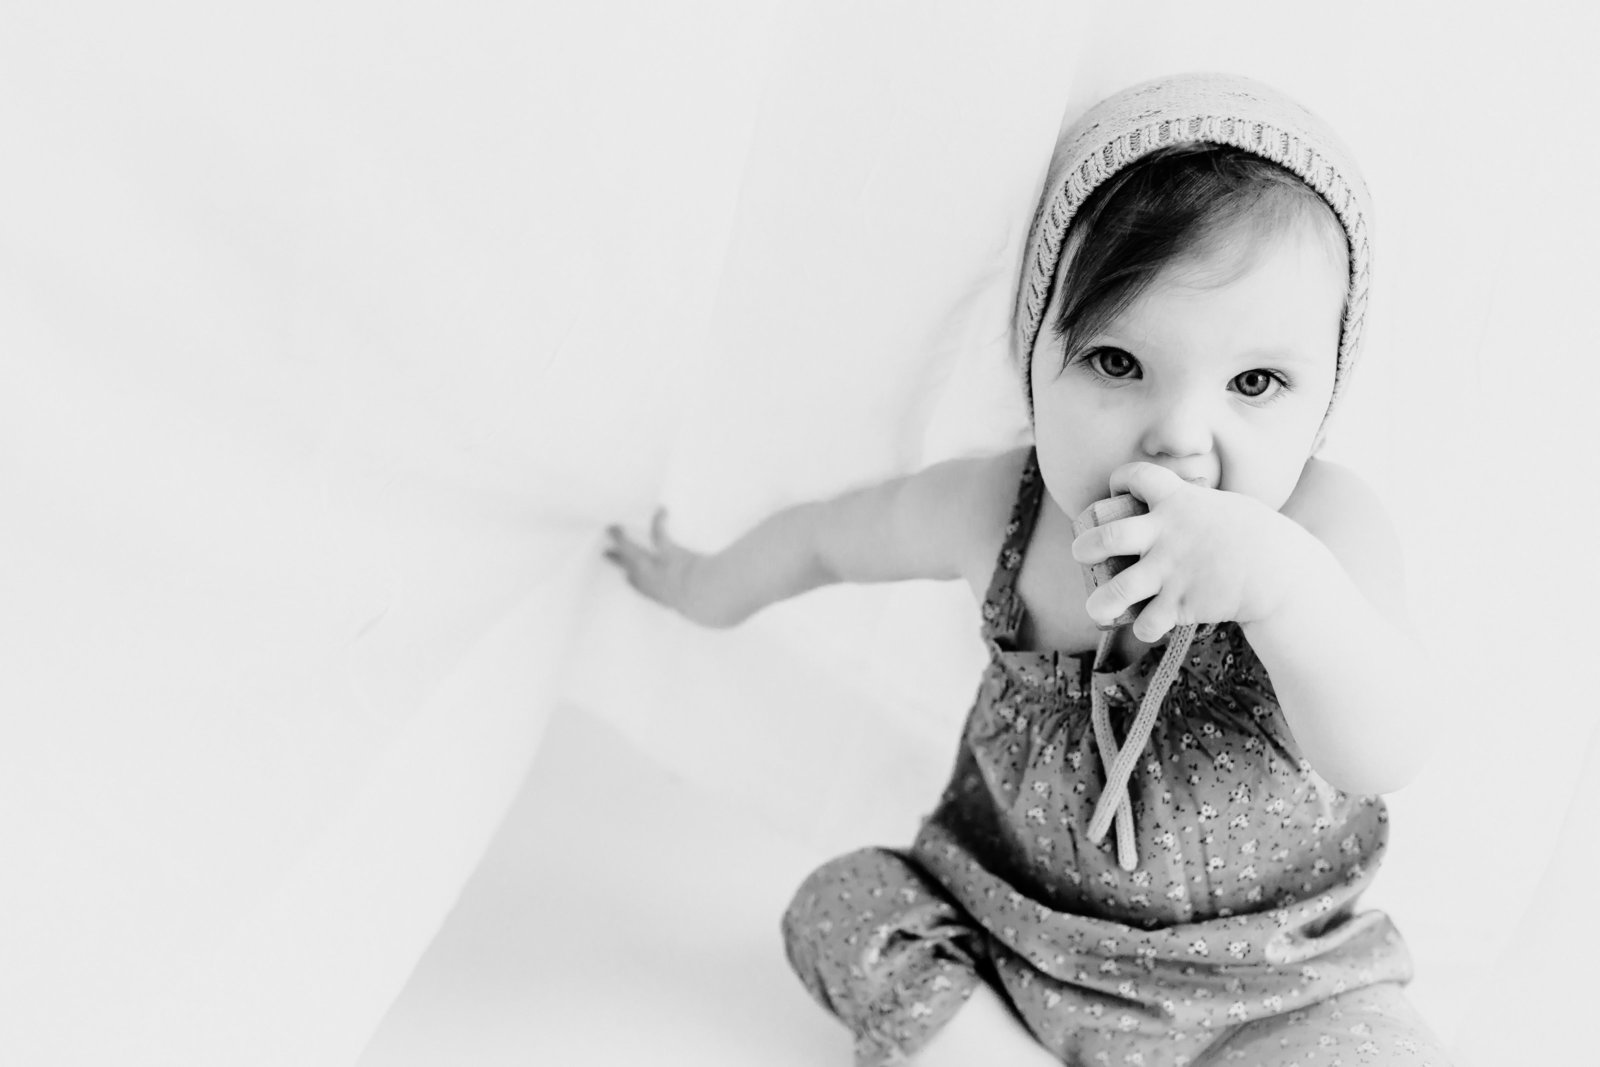 St_Louis_Baby_Photographer_Kelly_Laramore_Photography_35